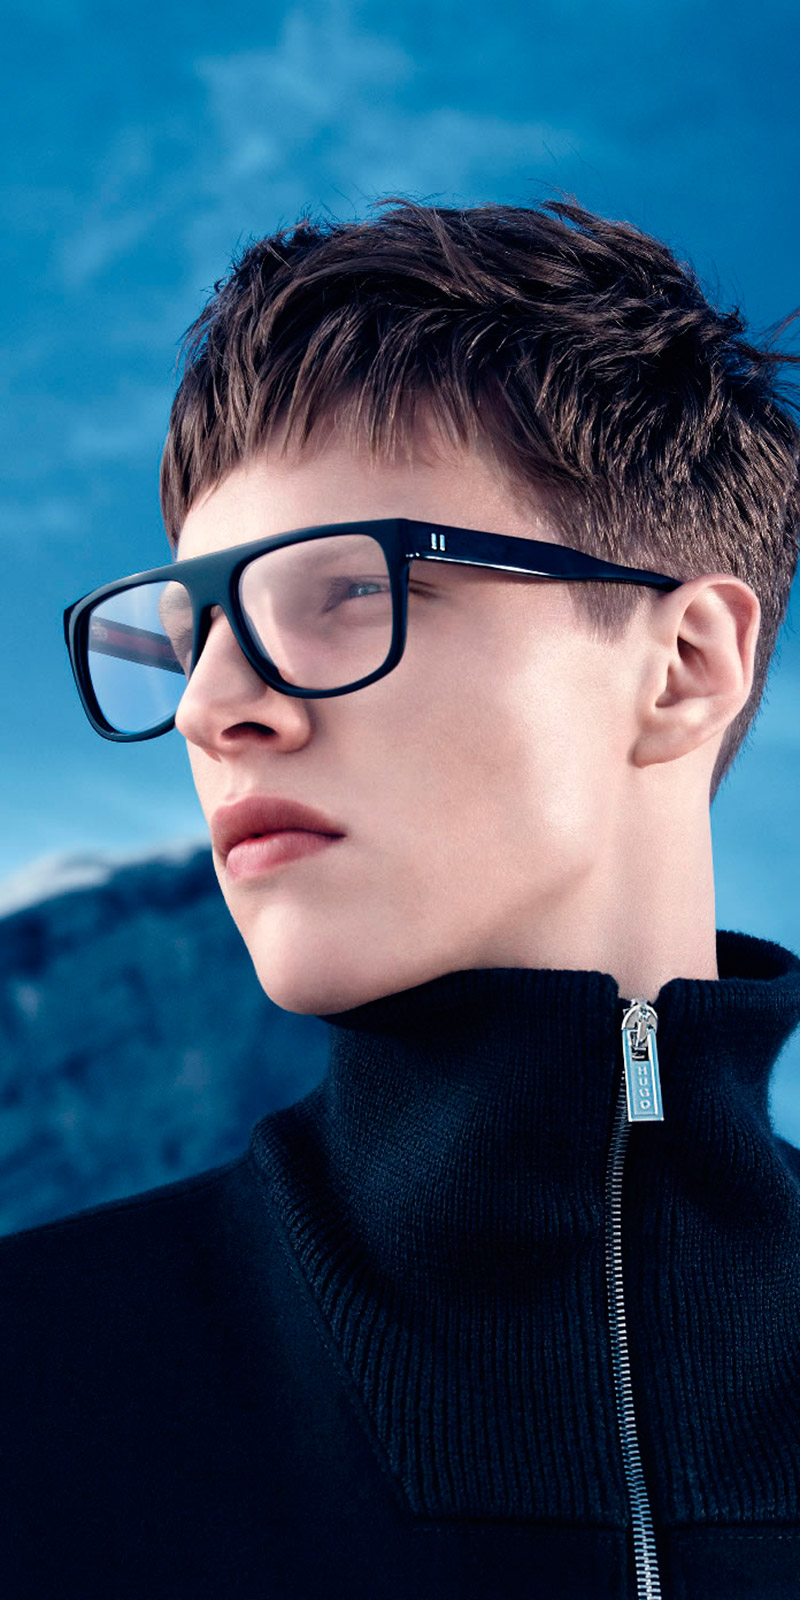 Hugo-by-Hugo-Boss-FW14-Campaign_fy8